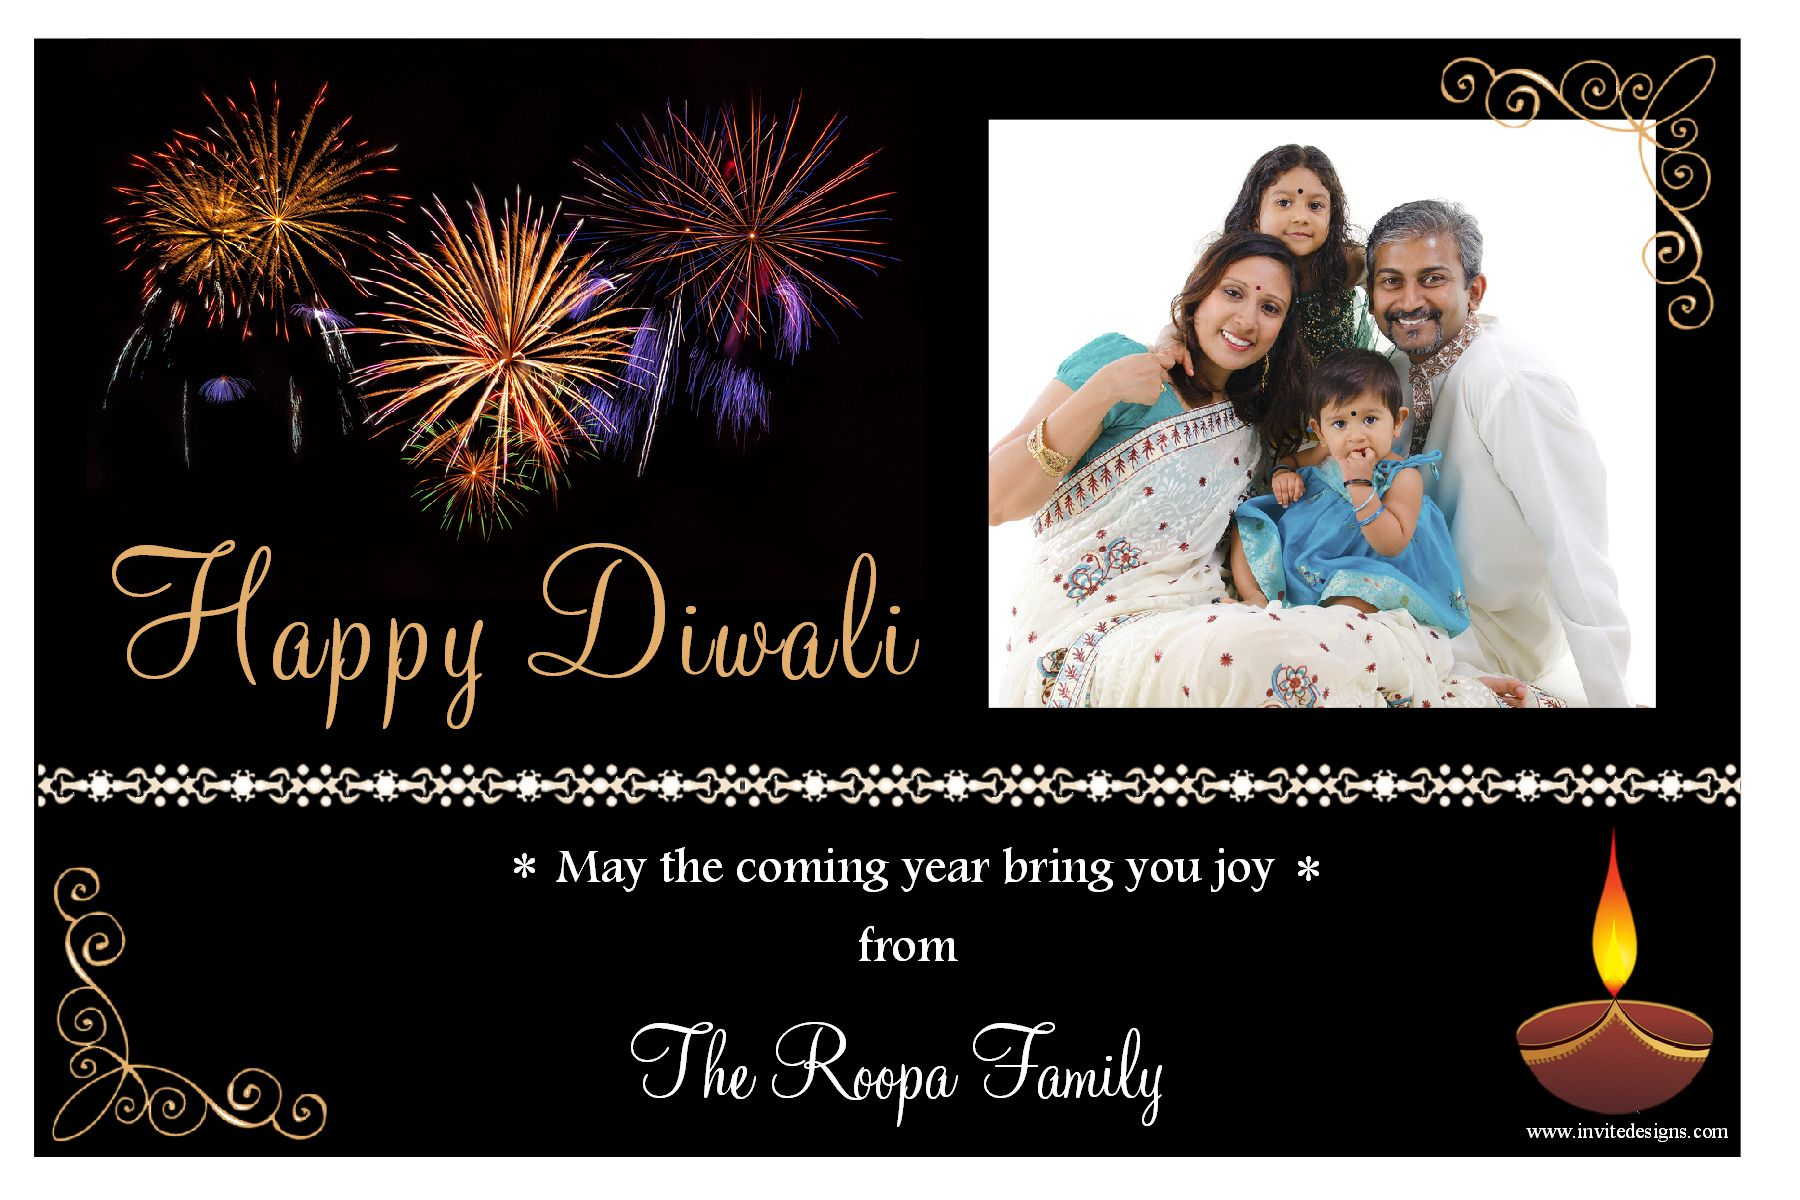 10 personalised diwali devali celebration new year photo cards n2 kristyandbryce Image collections